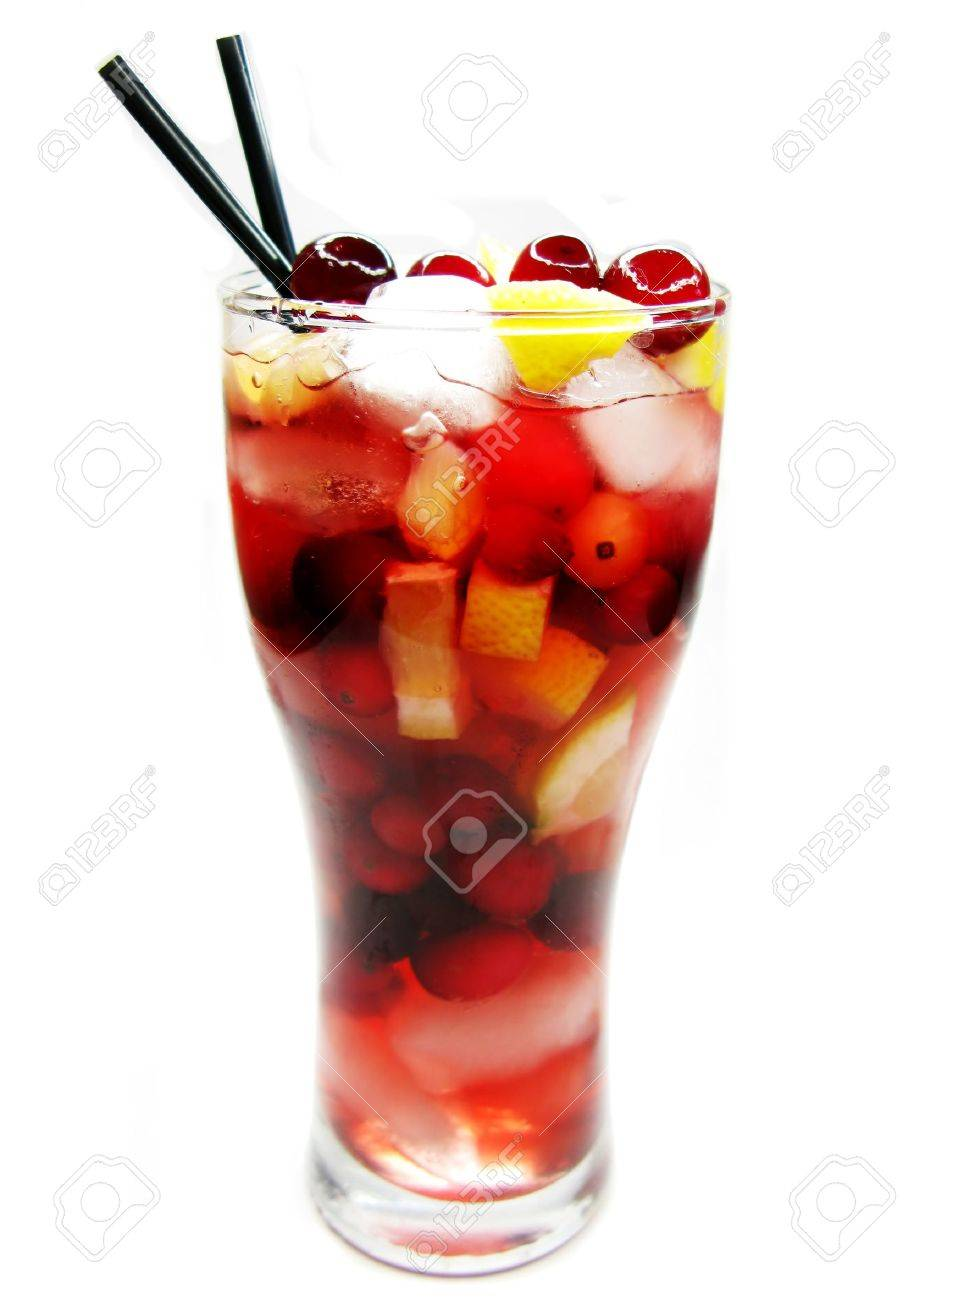 red fruit punch cocktail drink with cherry lemon and ice Stock Photo - 13834479